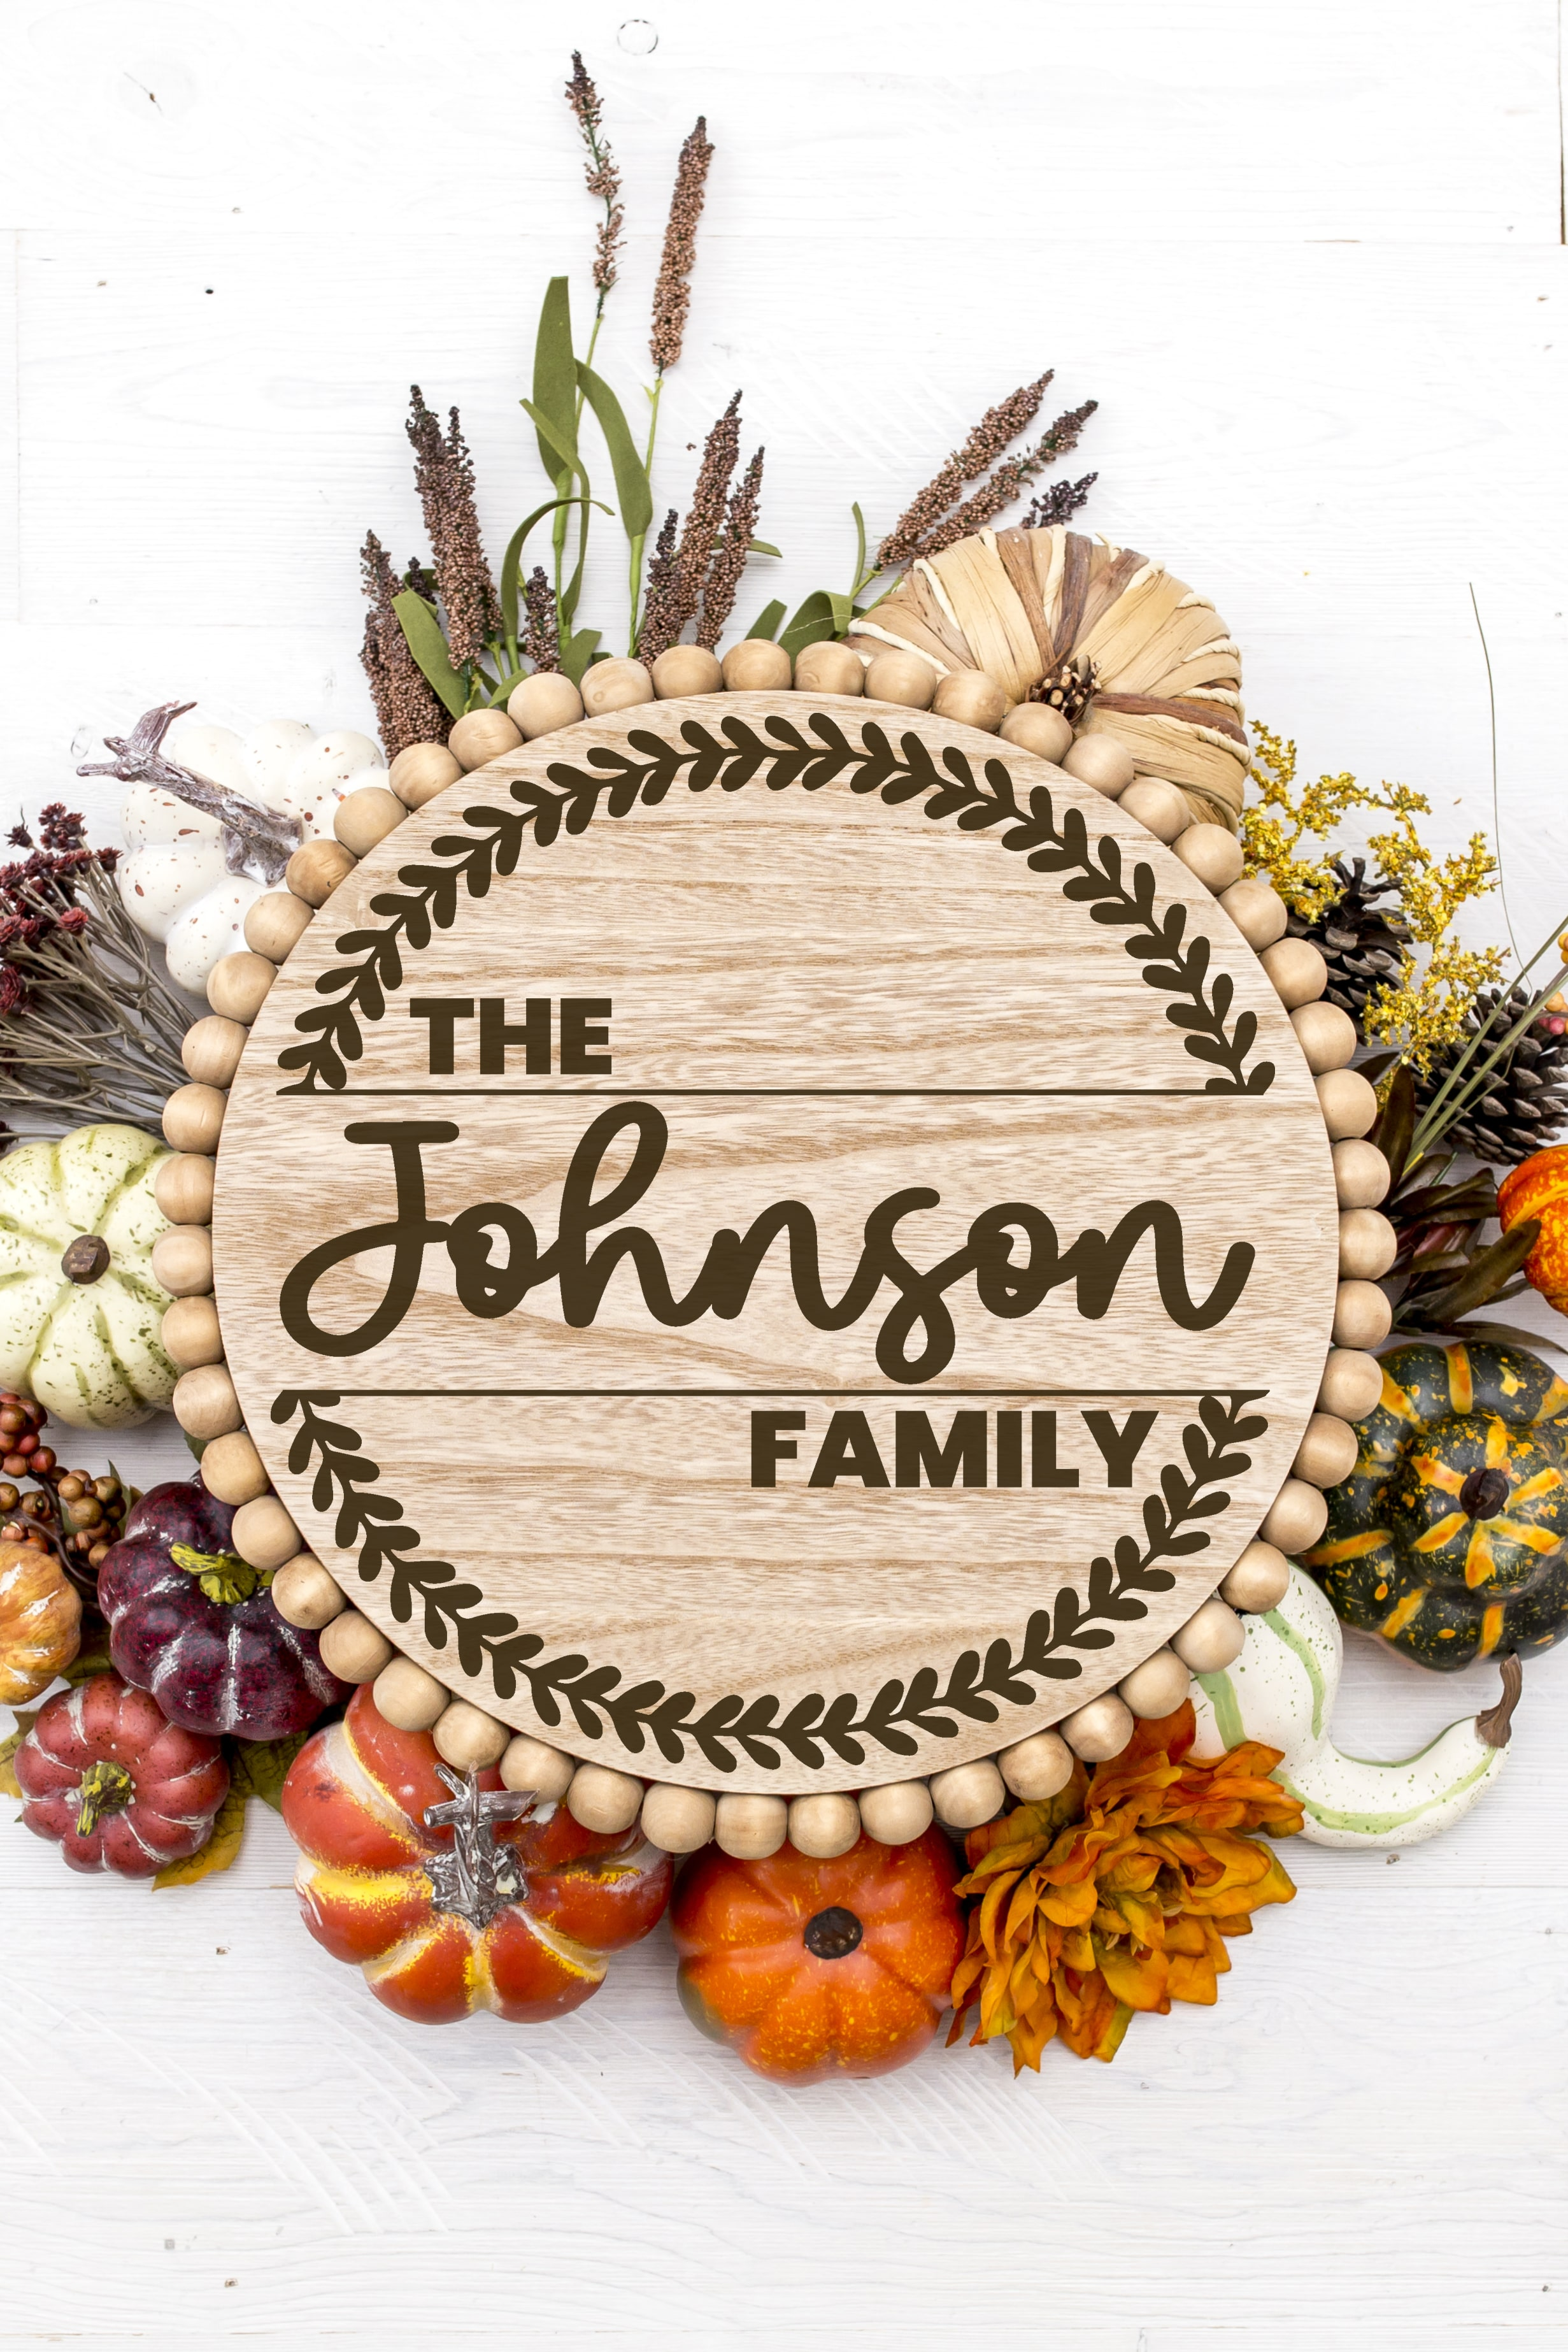 """Round wood wreath with """"The Johnson Family"""" design surrounded by fall pumpkins and foliage"""